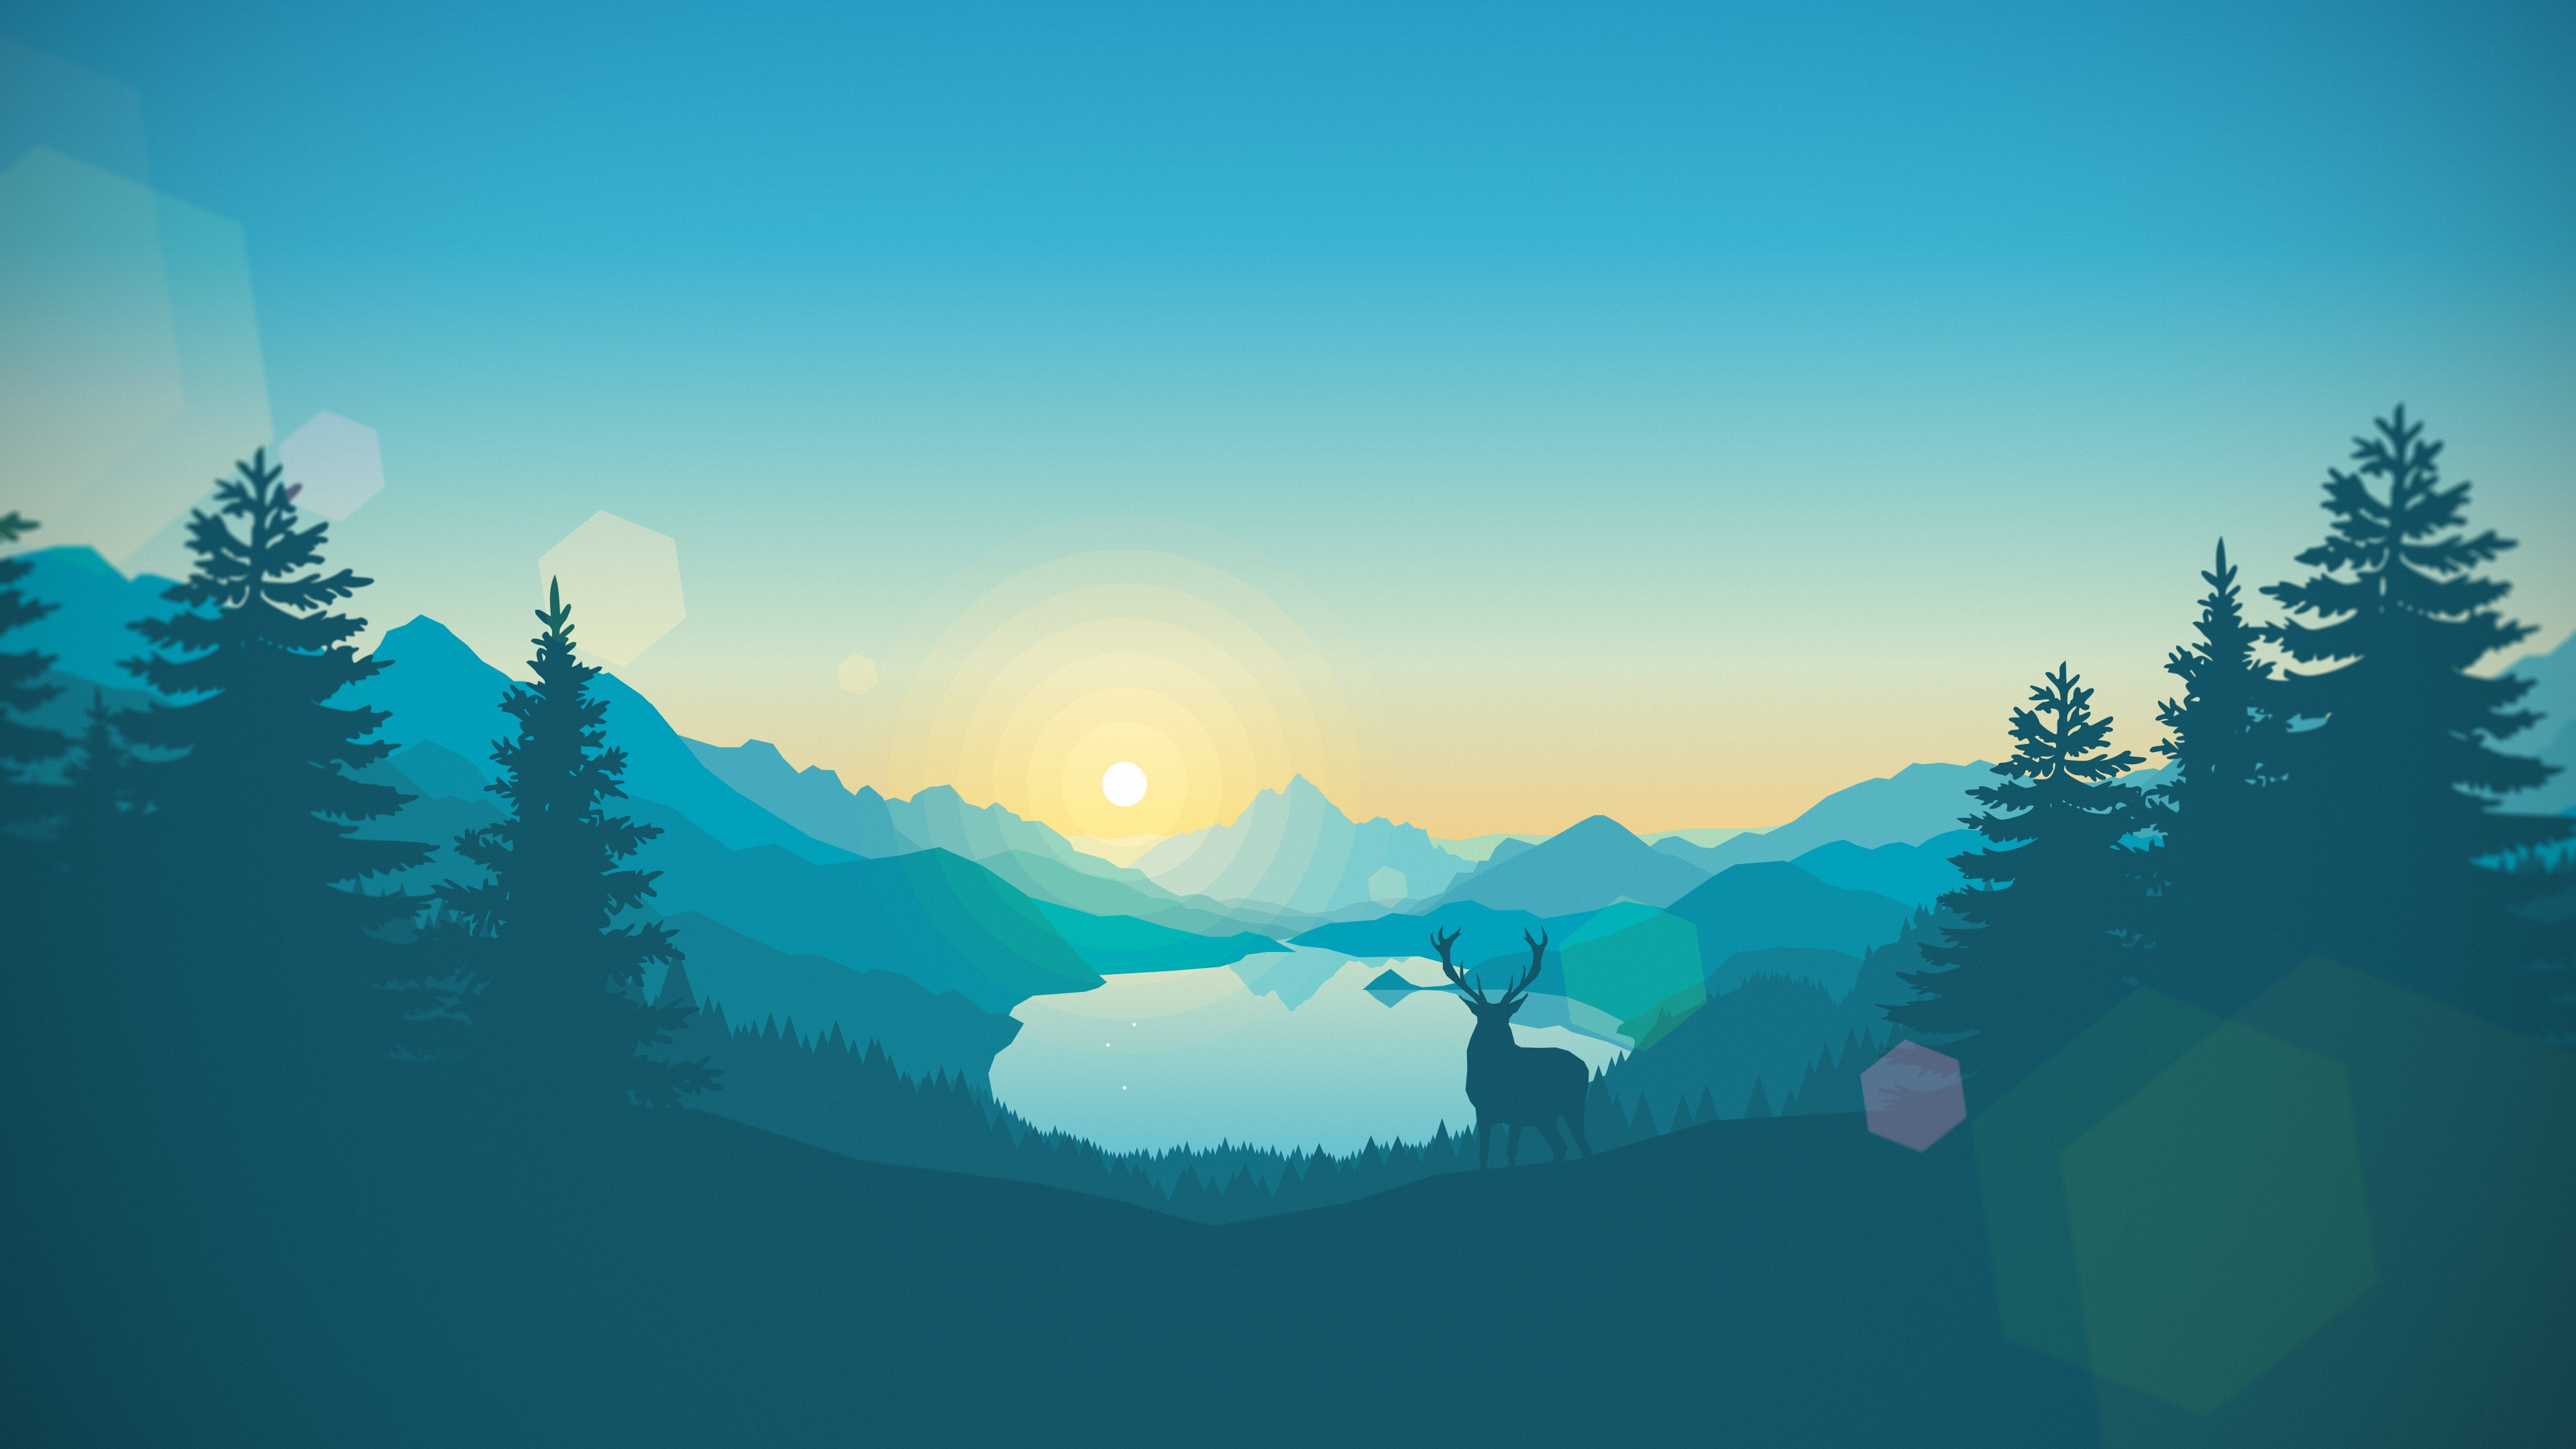 Sunrise lake artwork gradient vectors landscape - 2d nature wallpapers ...